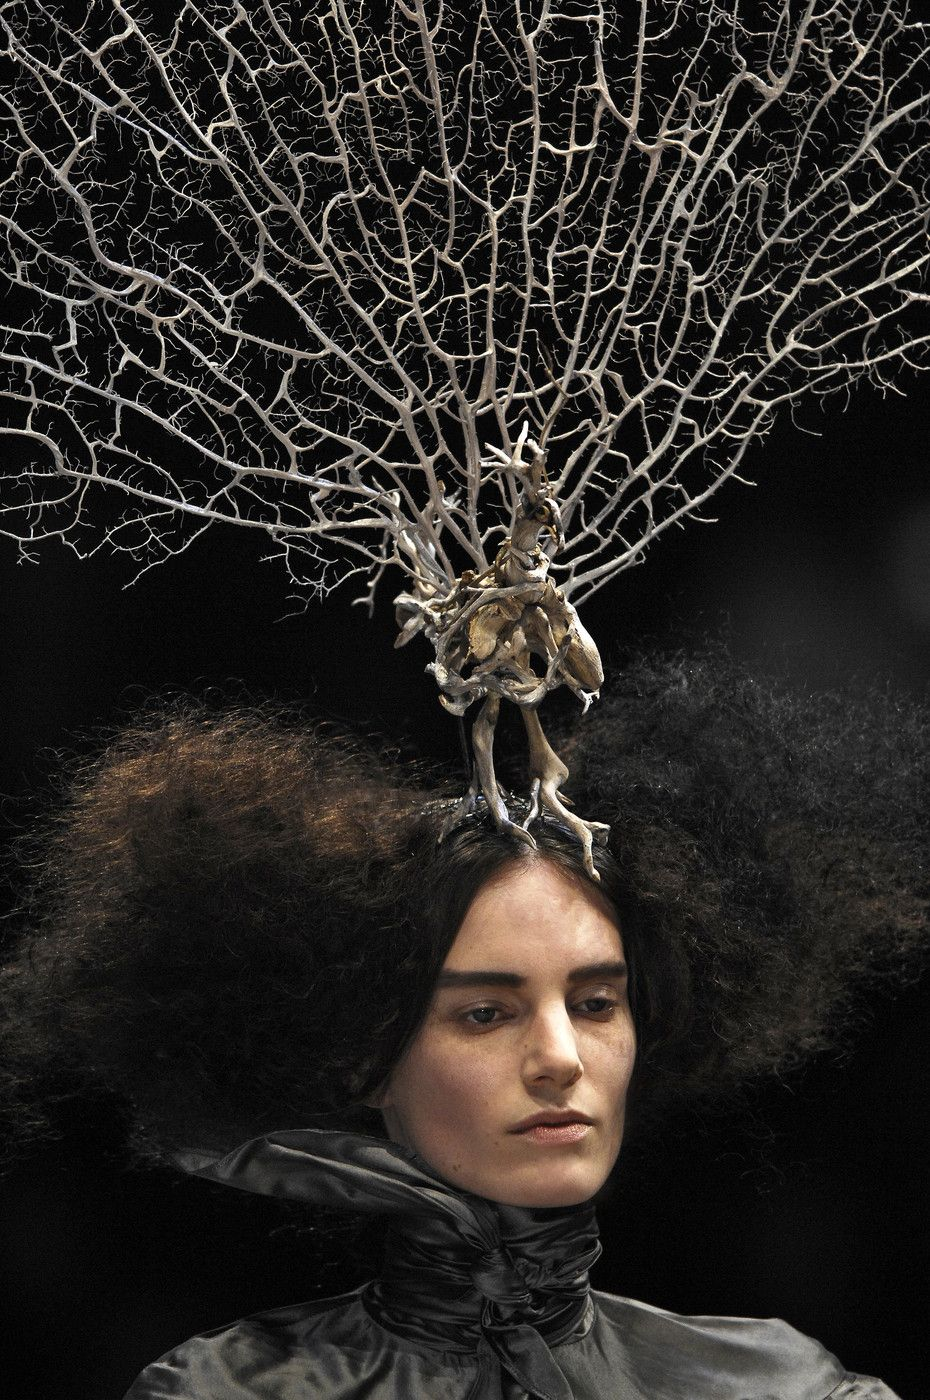 Alexander McQueen  Paris F W 2008  The Girl Who lived in the Tree   Collection. Philip Treacy hair piece. ee3d3ec4893